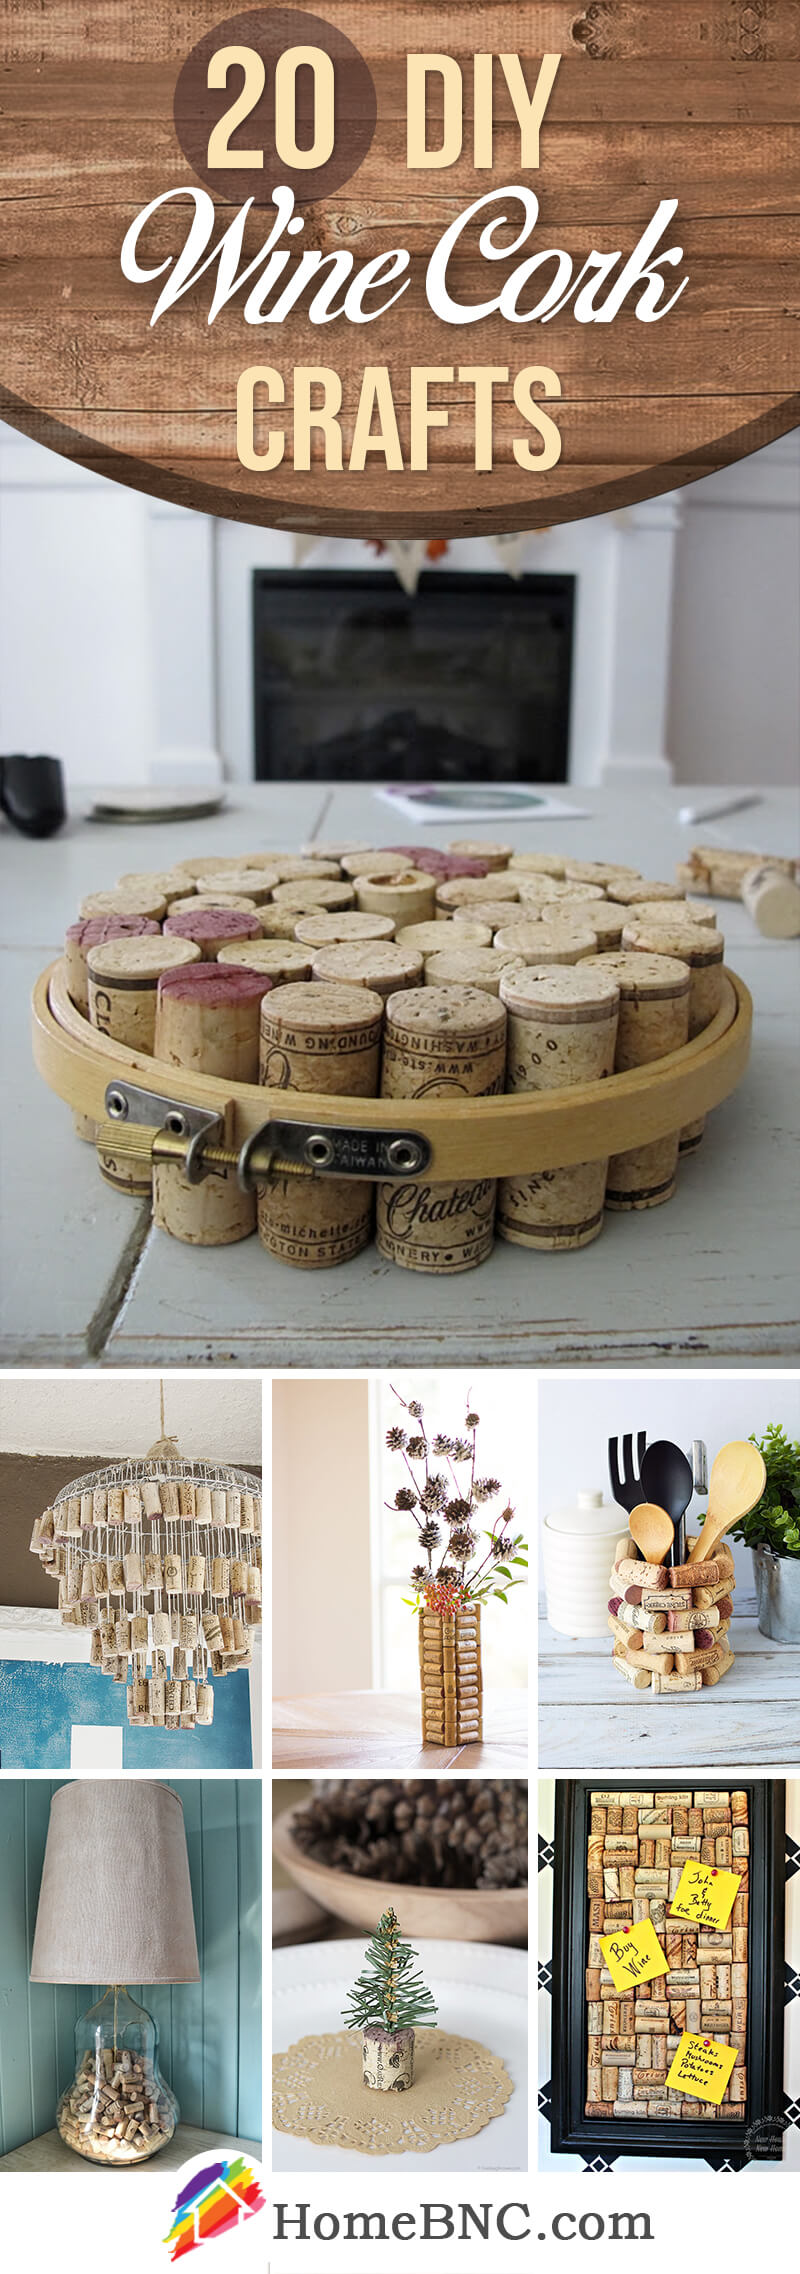 DIY Wine Cork Craft Ideas